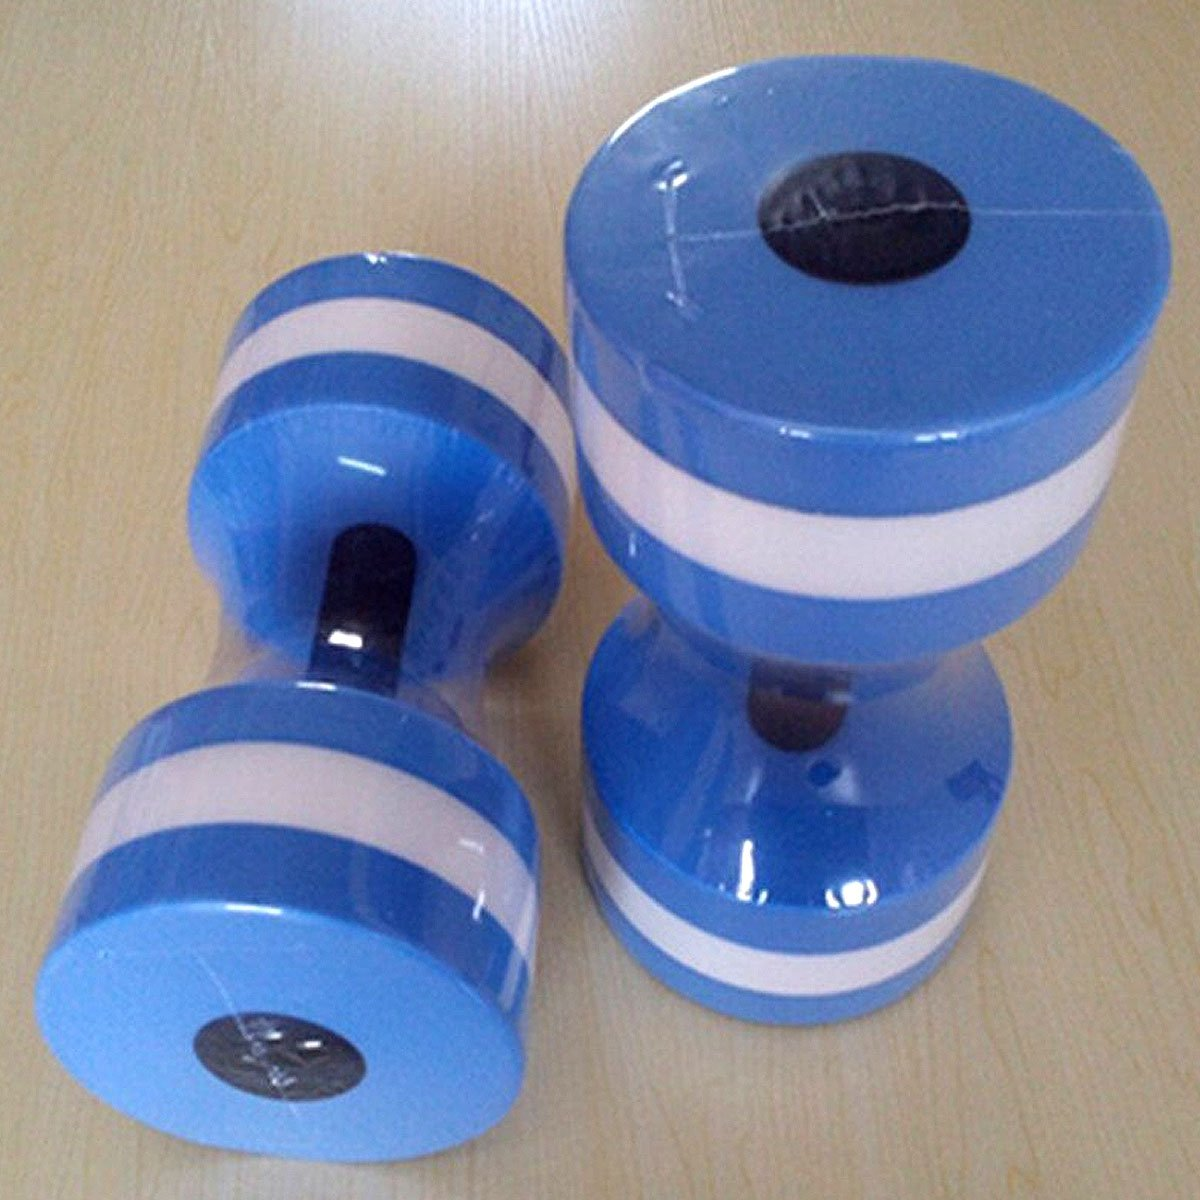 Water Aerobic Exercise Foam Dumbbells Pool Resistance 1 Pair, Water Fitness Exercises Equipment for Weight Loss Blue with a Carry Bag Easy lINK